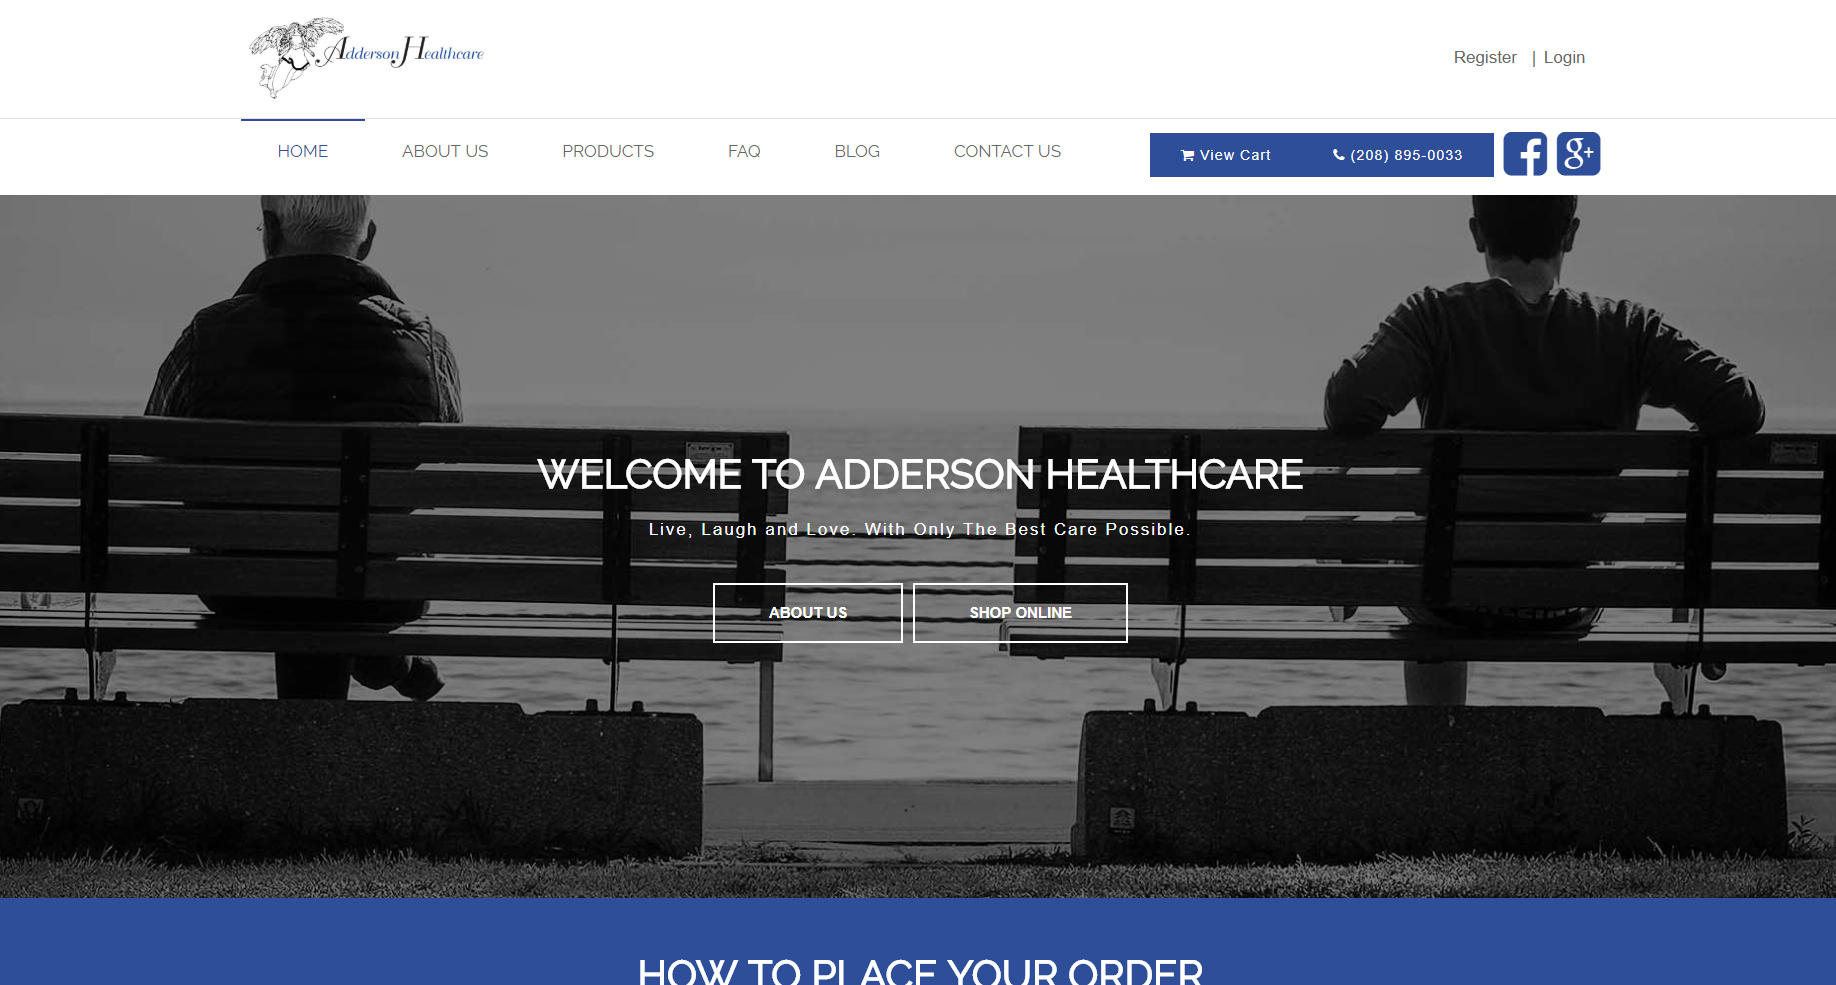 Adderson Healthcare